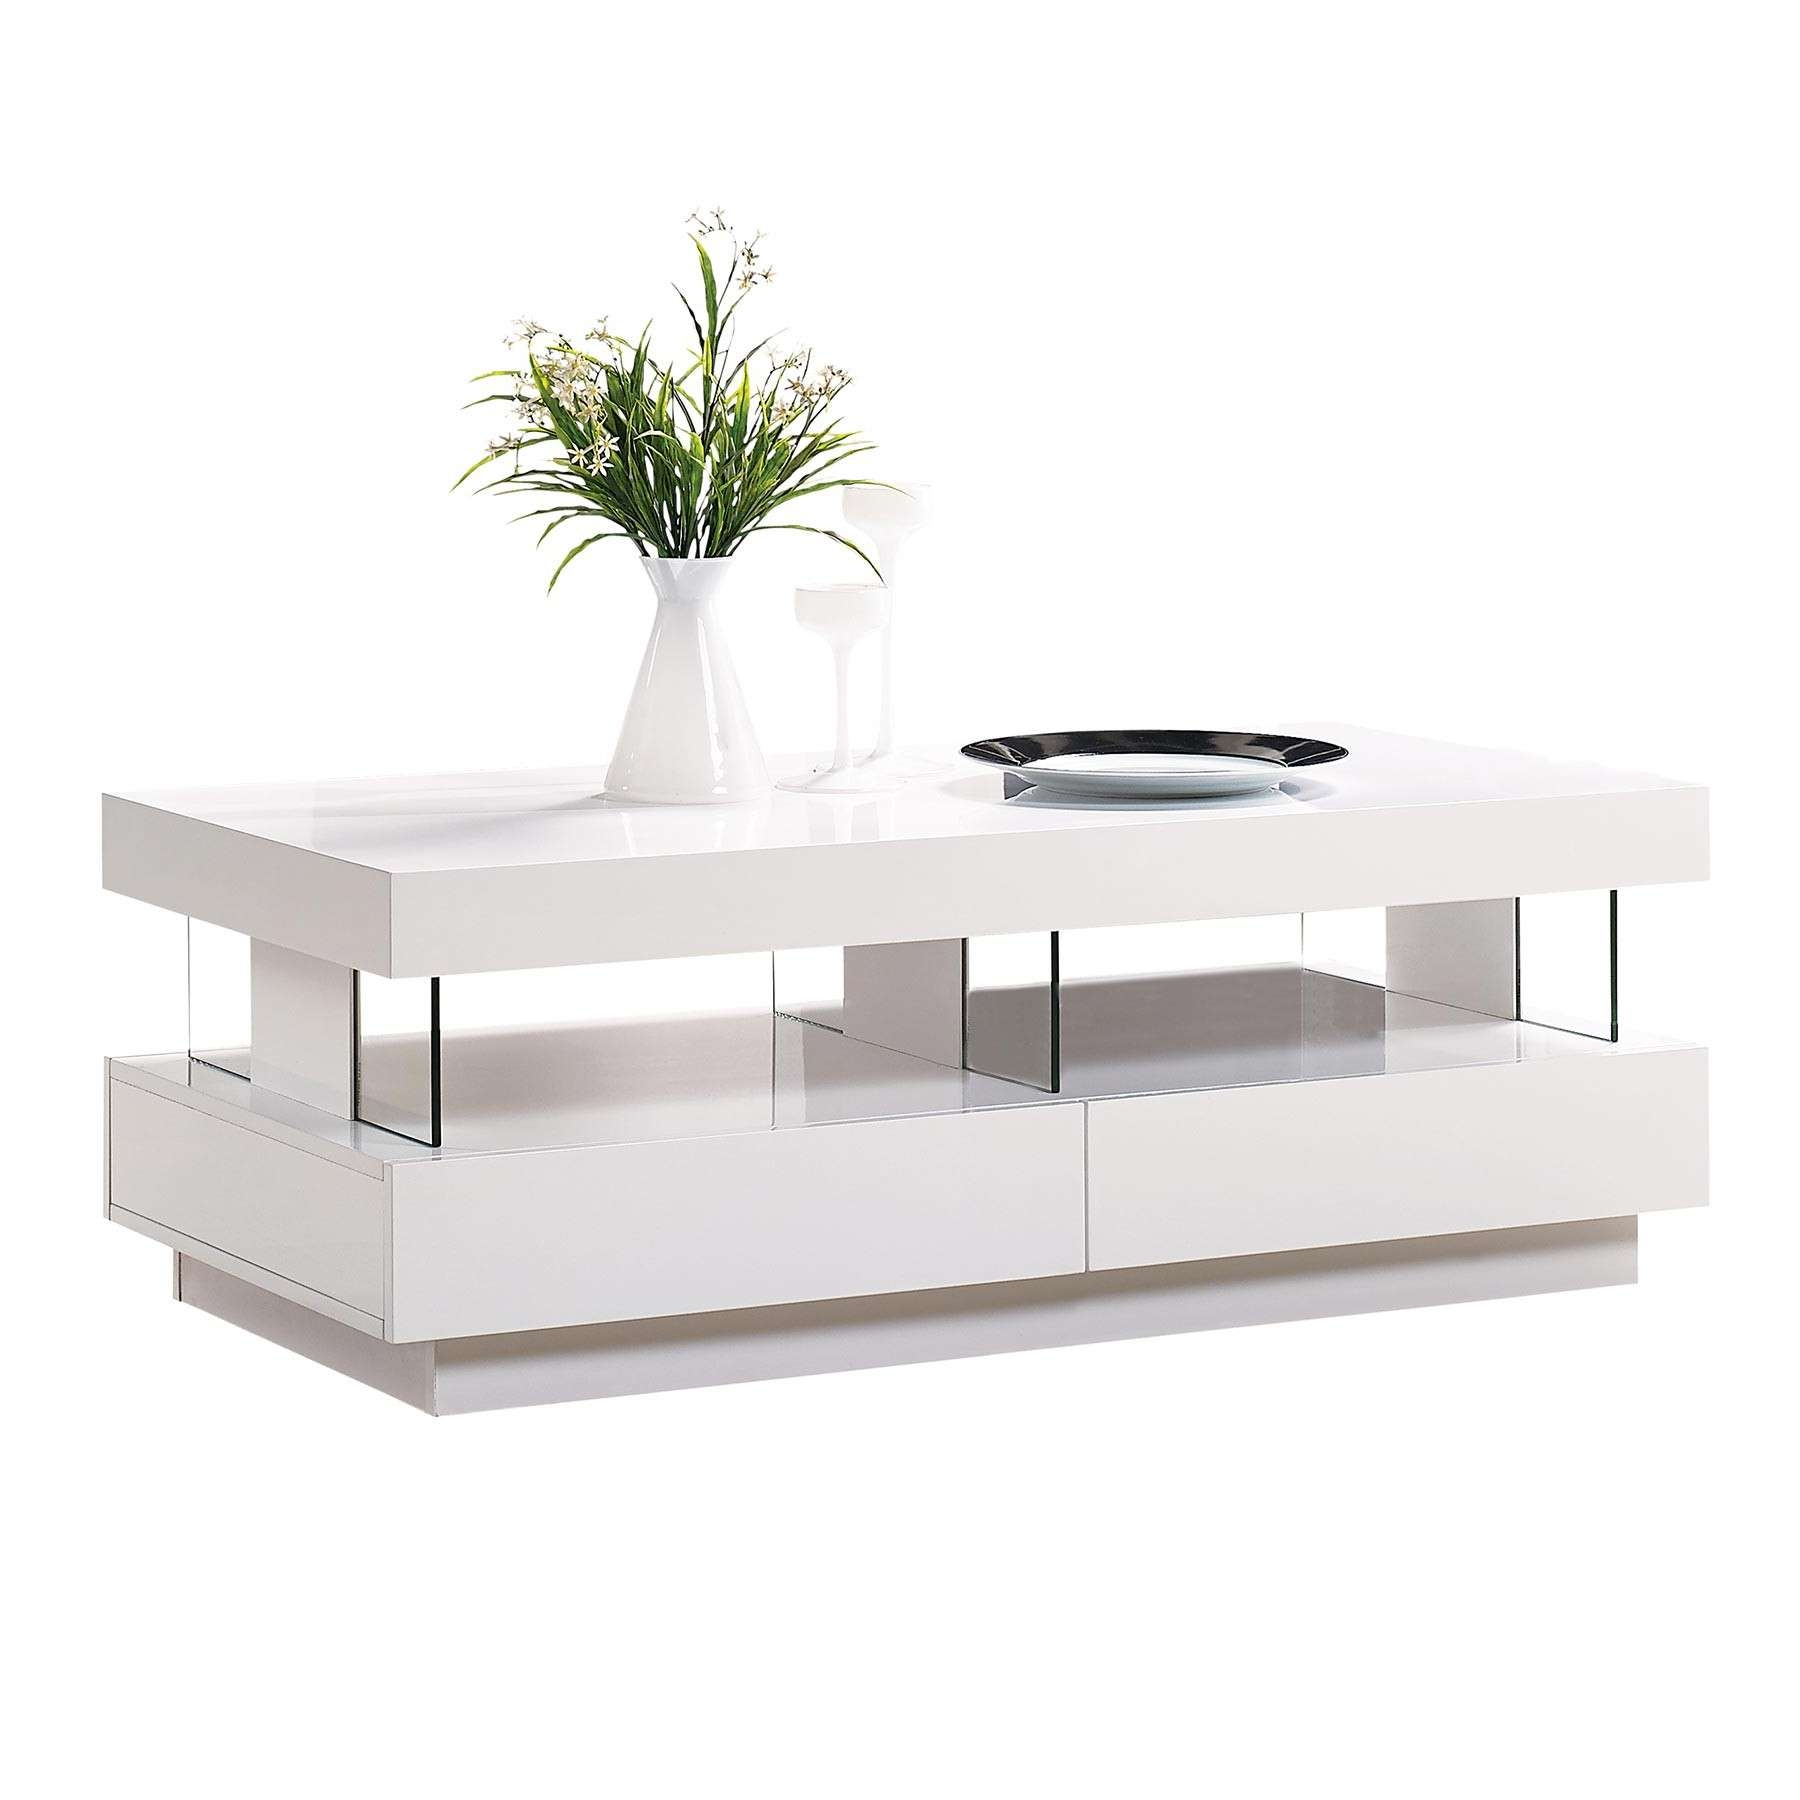 11 White Gloss Oval Coffee Table Inspiration on Coffee Table Inspiration  id=90413